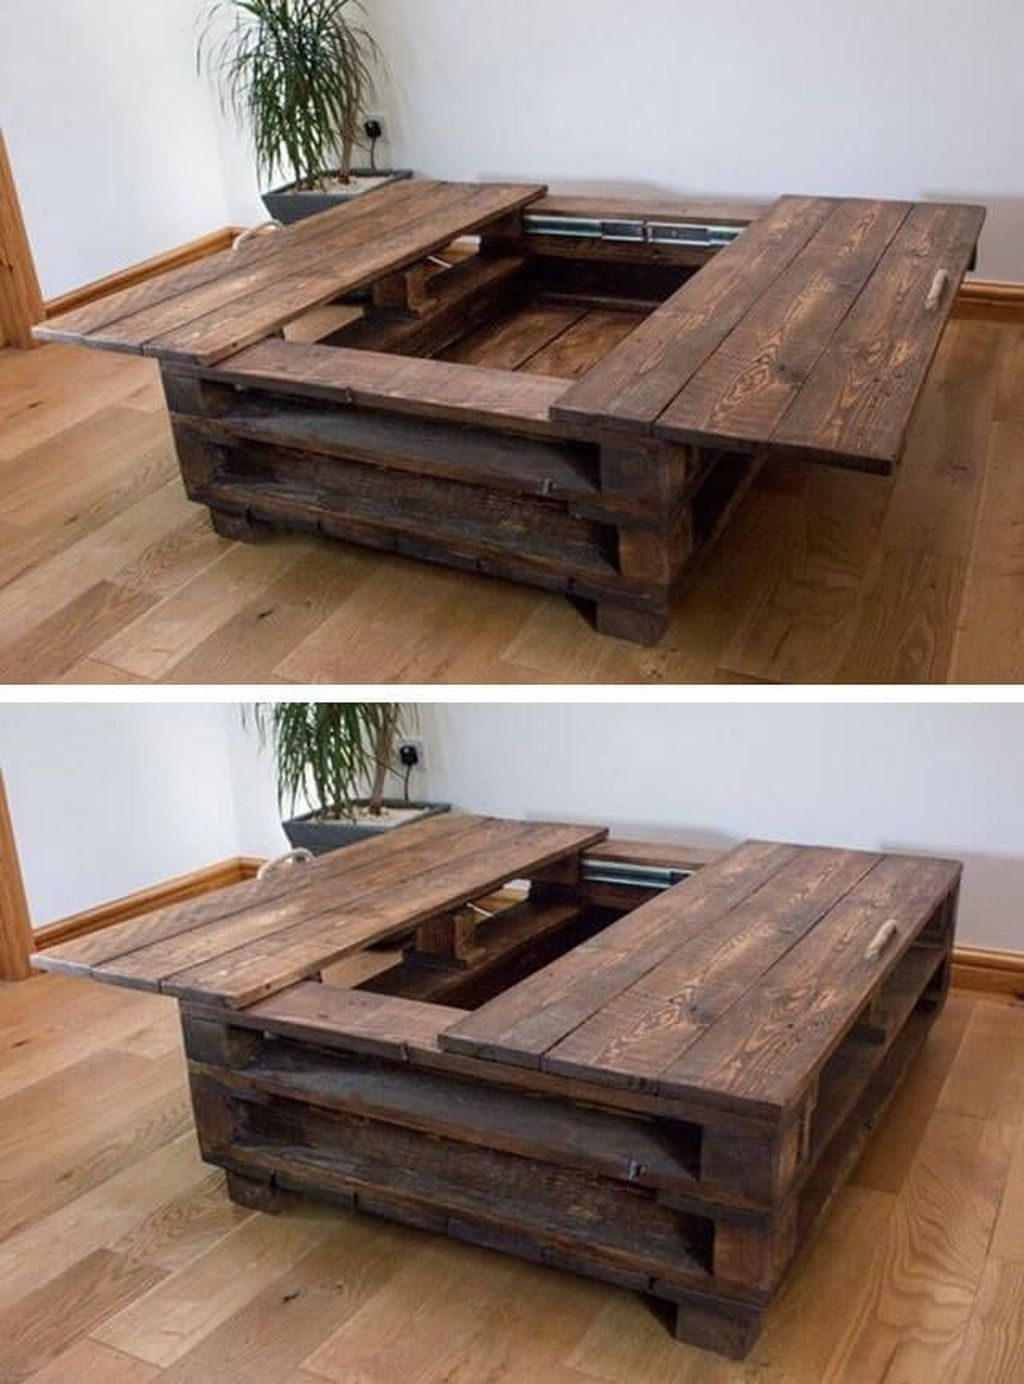 Awesome Wooden Coffee Table Design Ideas Match For Any Home Design 22 Wooden Coffee Table Designs Modern Coffee Table Decor Wooden Pallet Furniture [ 1384 x 1024 Pixel ]